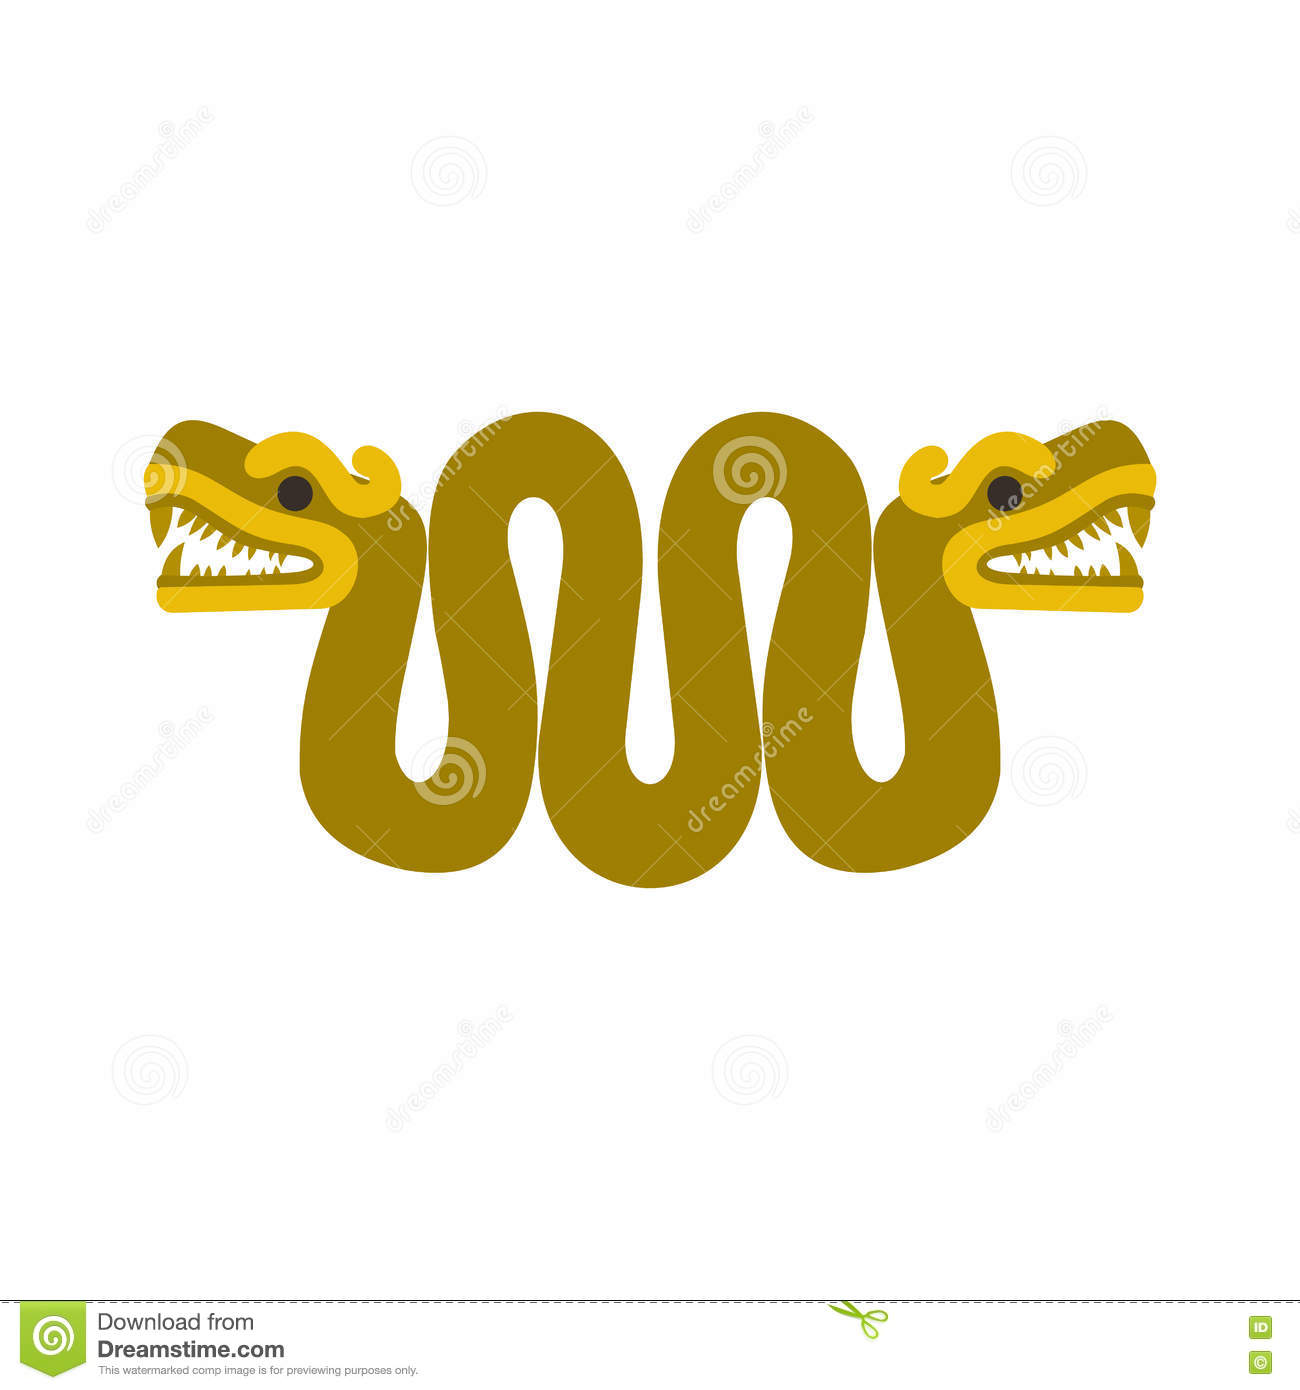 031de7bba Aztec snake with two heads icon in flat style isolated on white background.  Designers Also Selected These Stock Illustrations